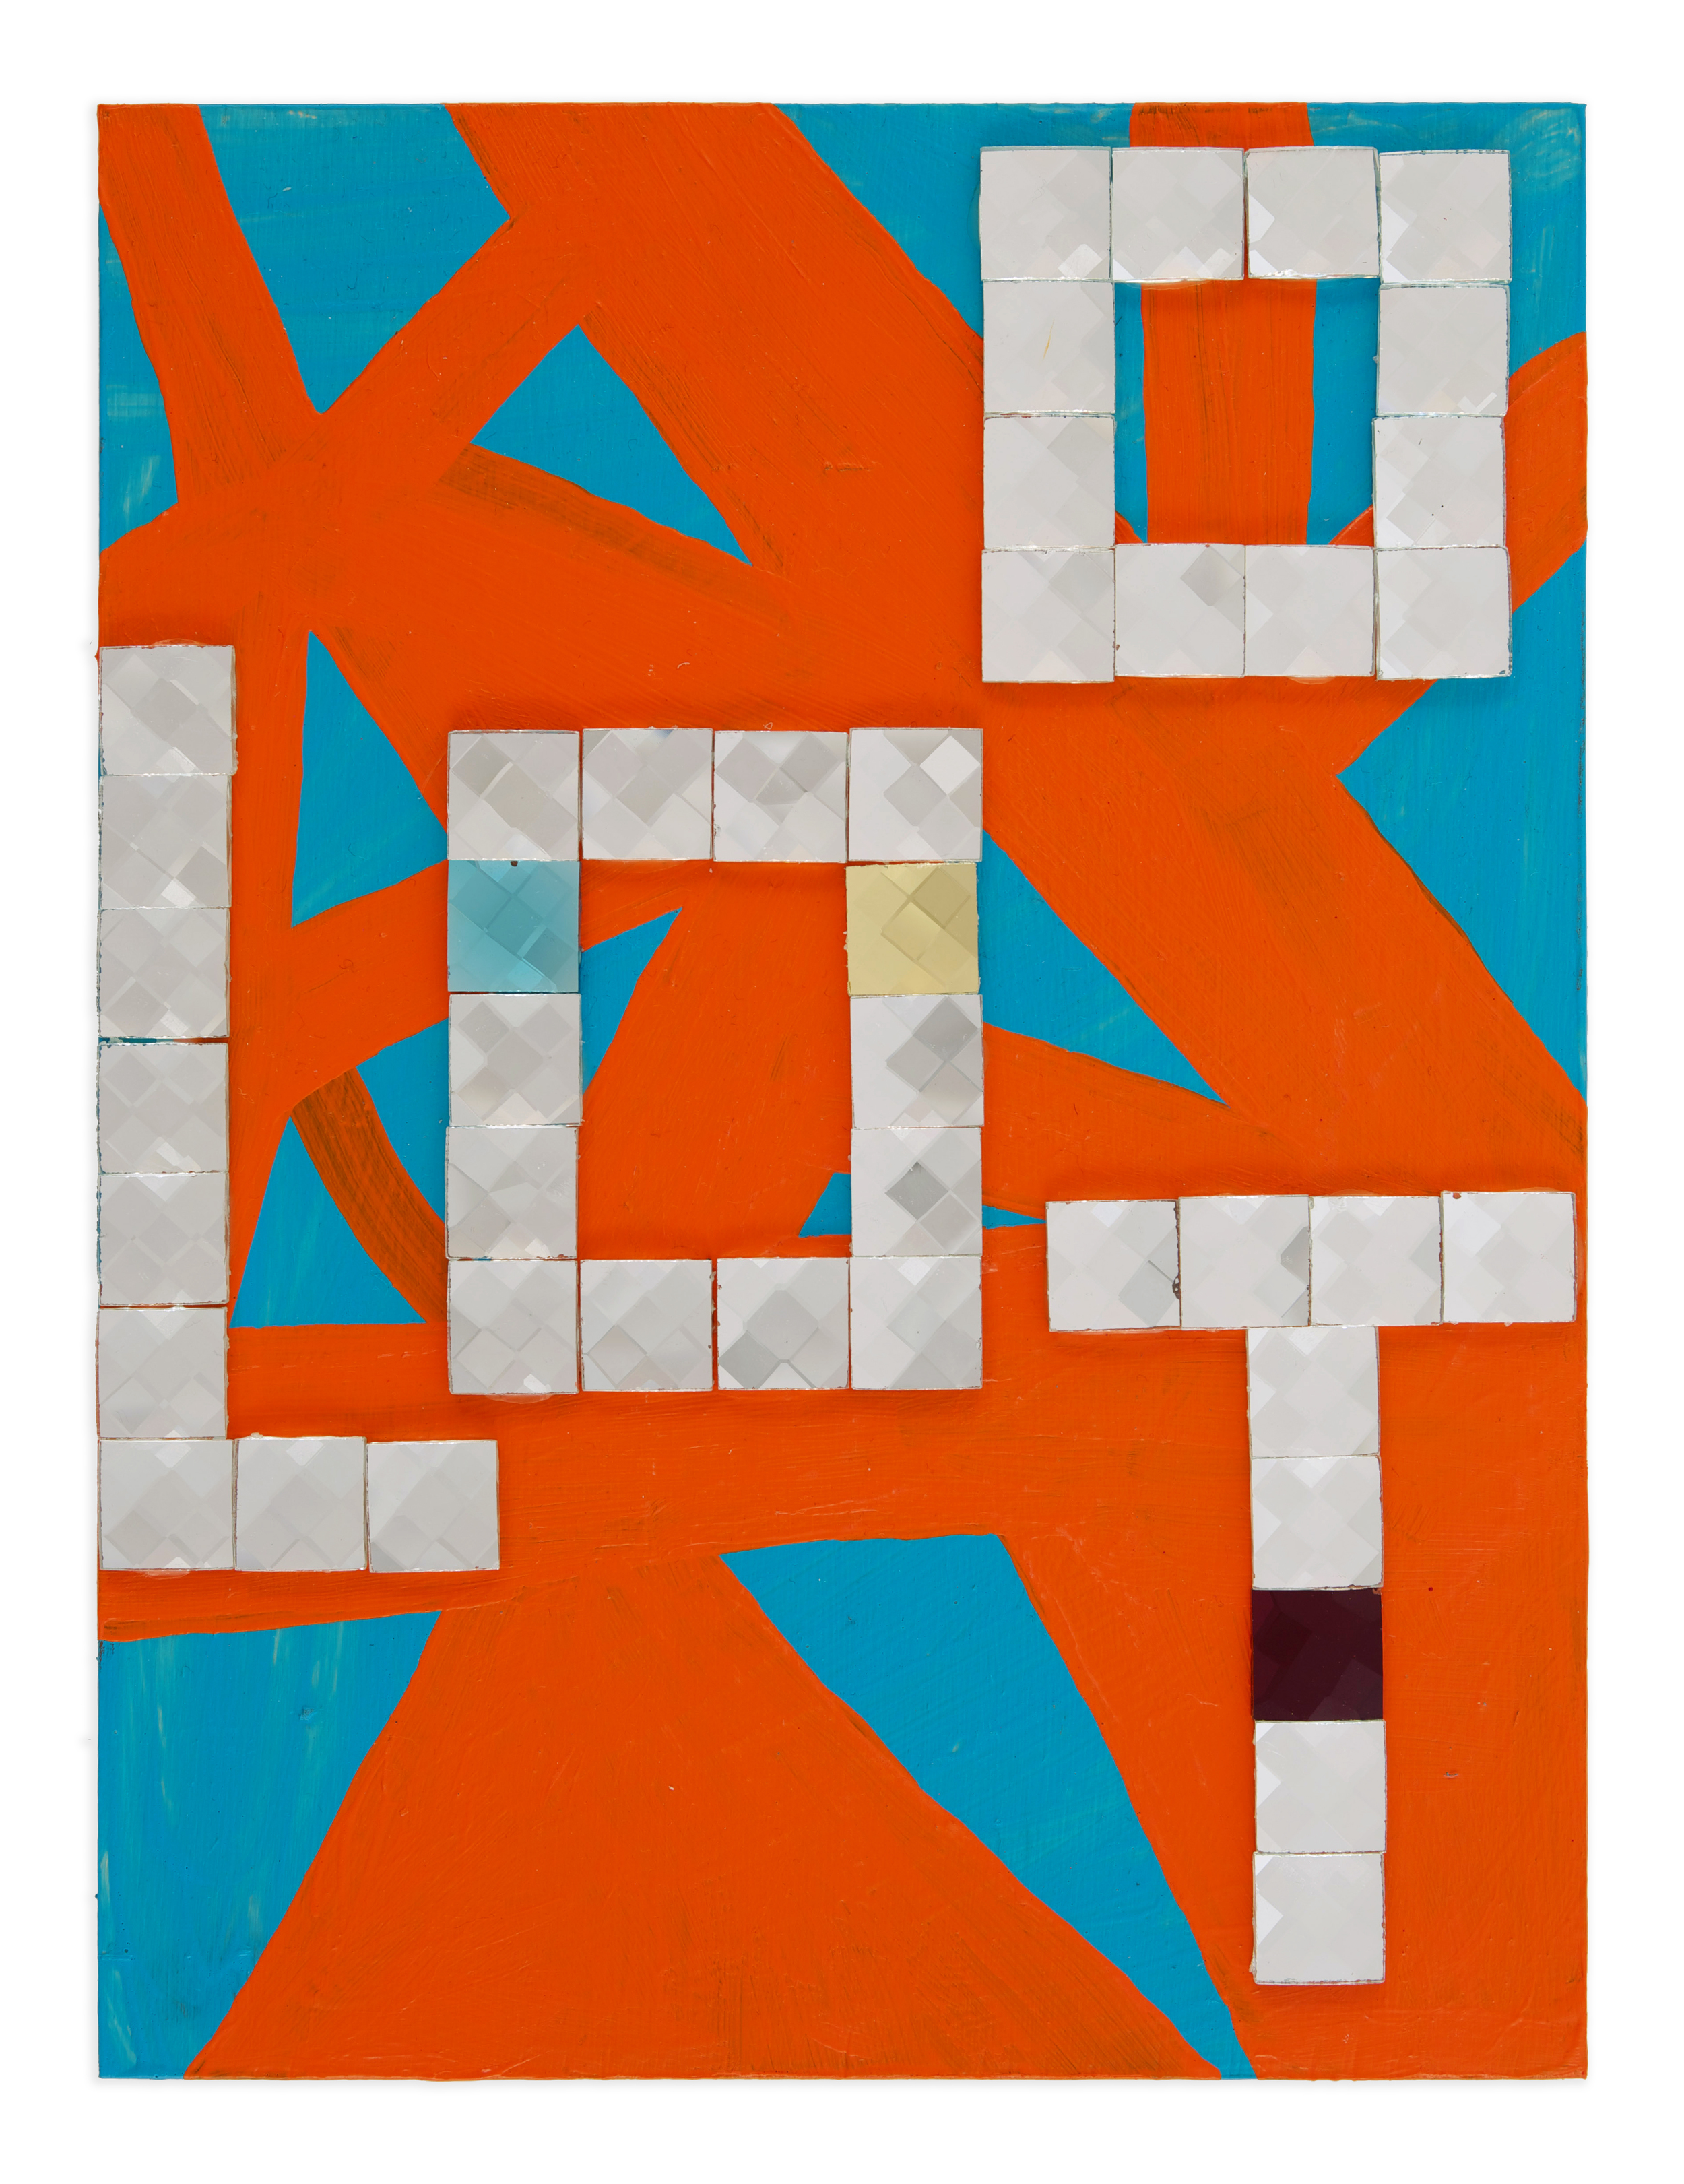 LOOT #2 , 2014, acrylic and glass tile on wood, 12 x 9 in